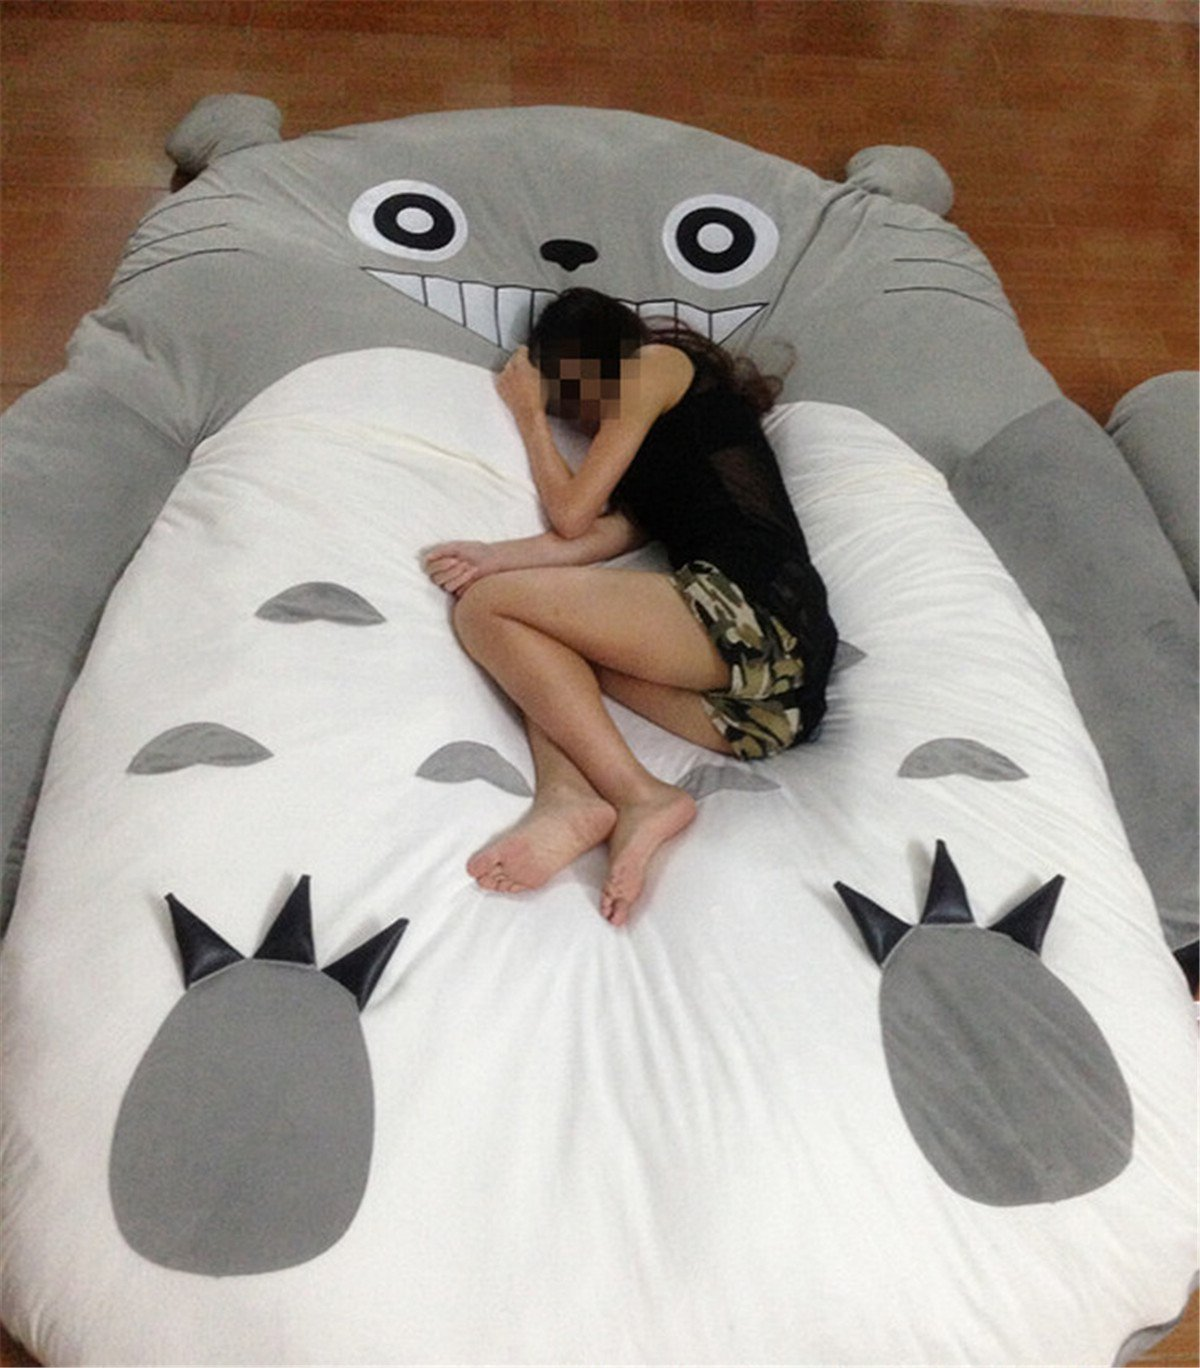 HOT SALE Children's and Adult Totoro Design Big Sofa Totoro Bed Mattress Sleeping Bag Mattress by VU ROUL (Image #2)